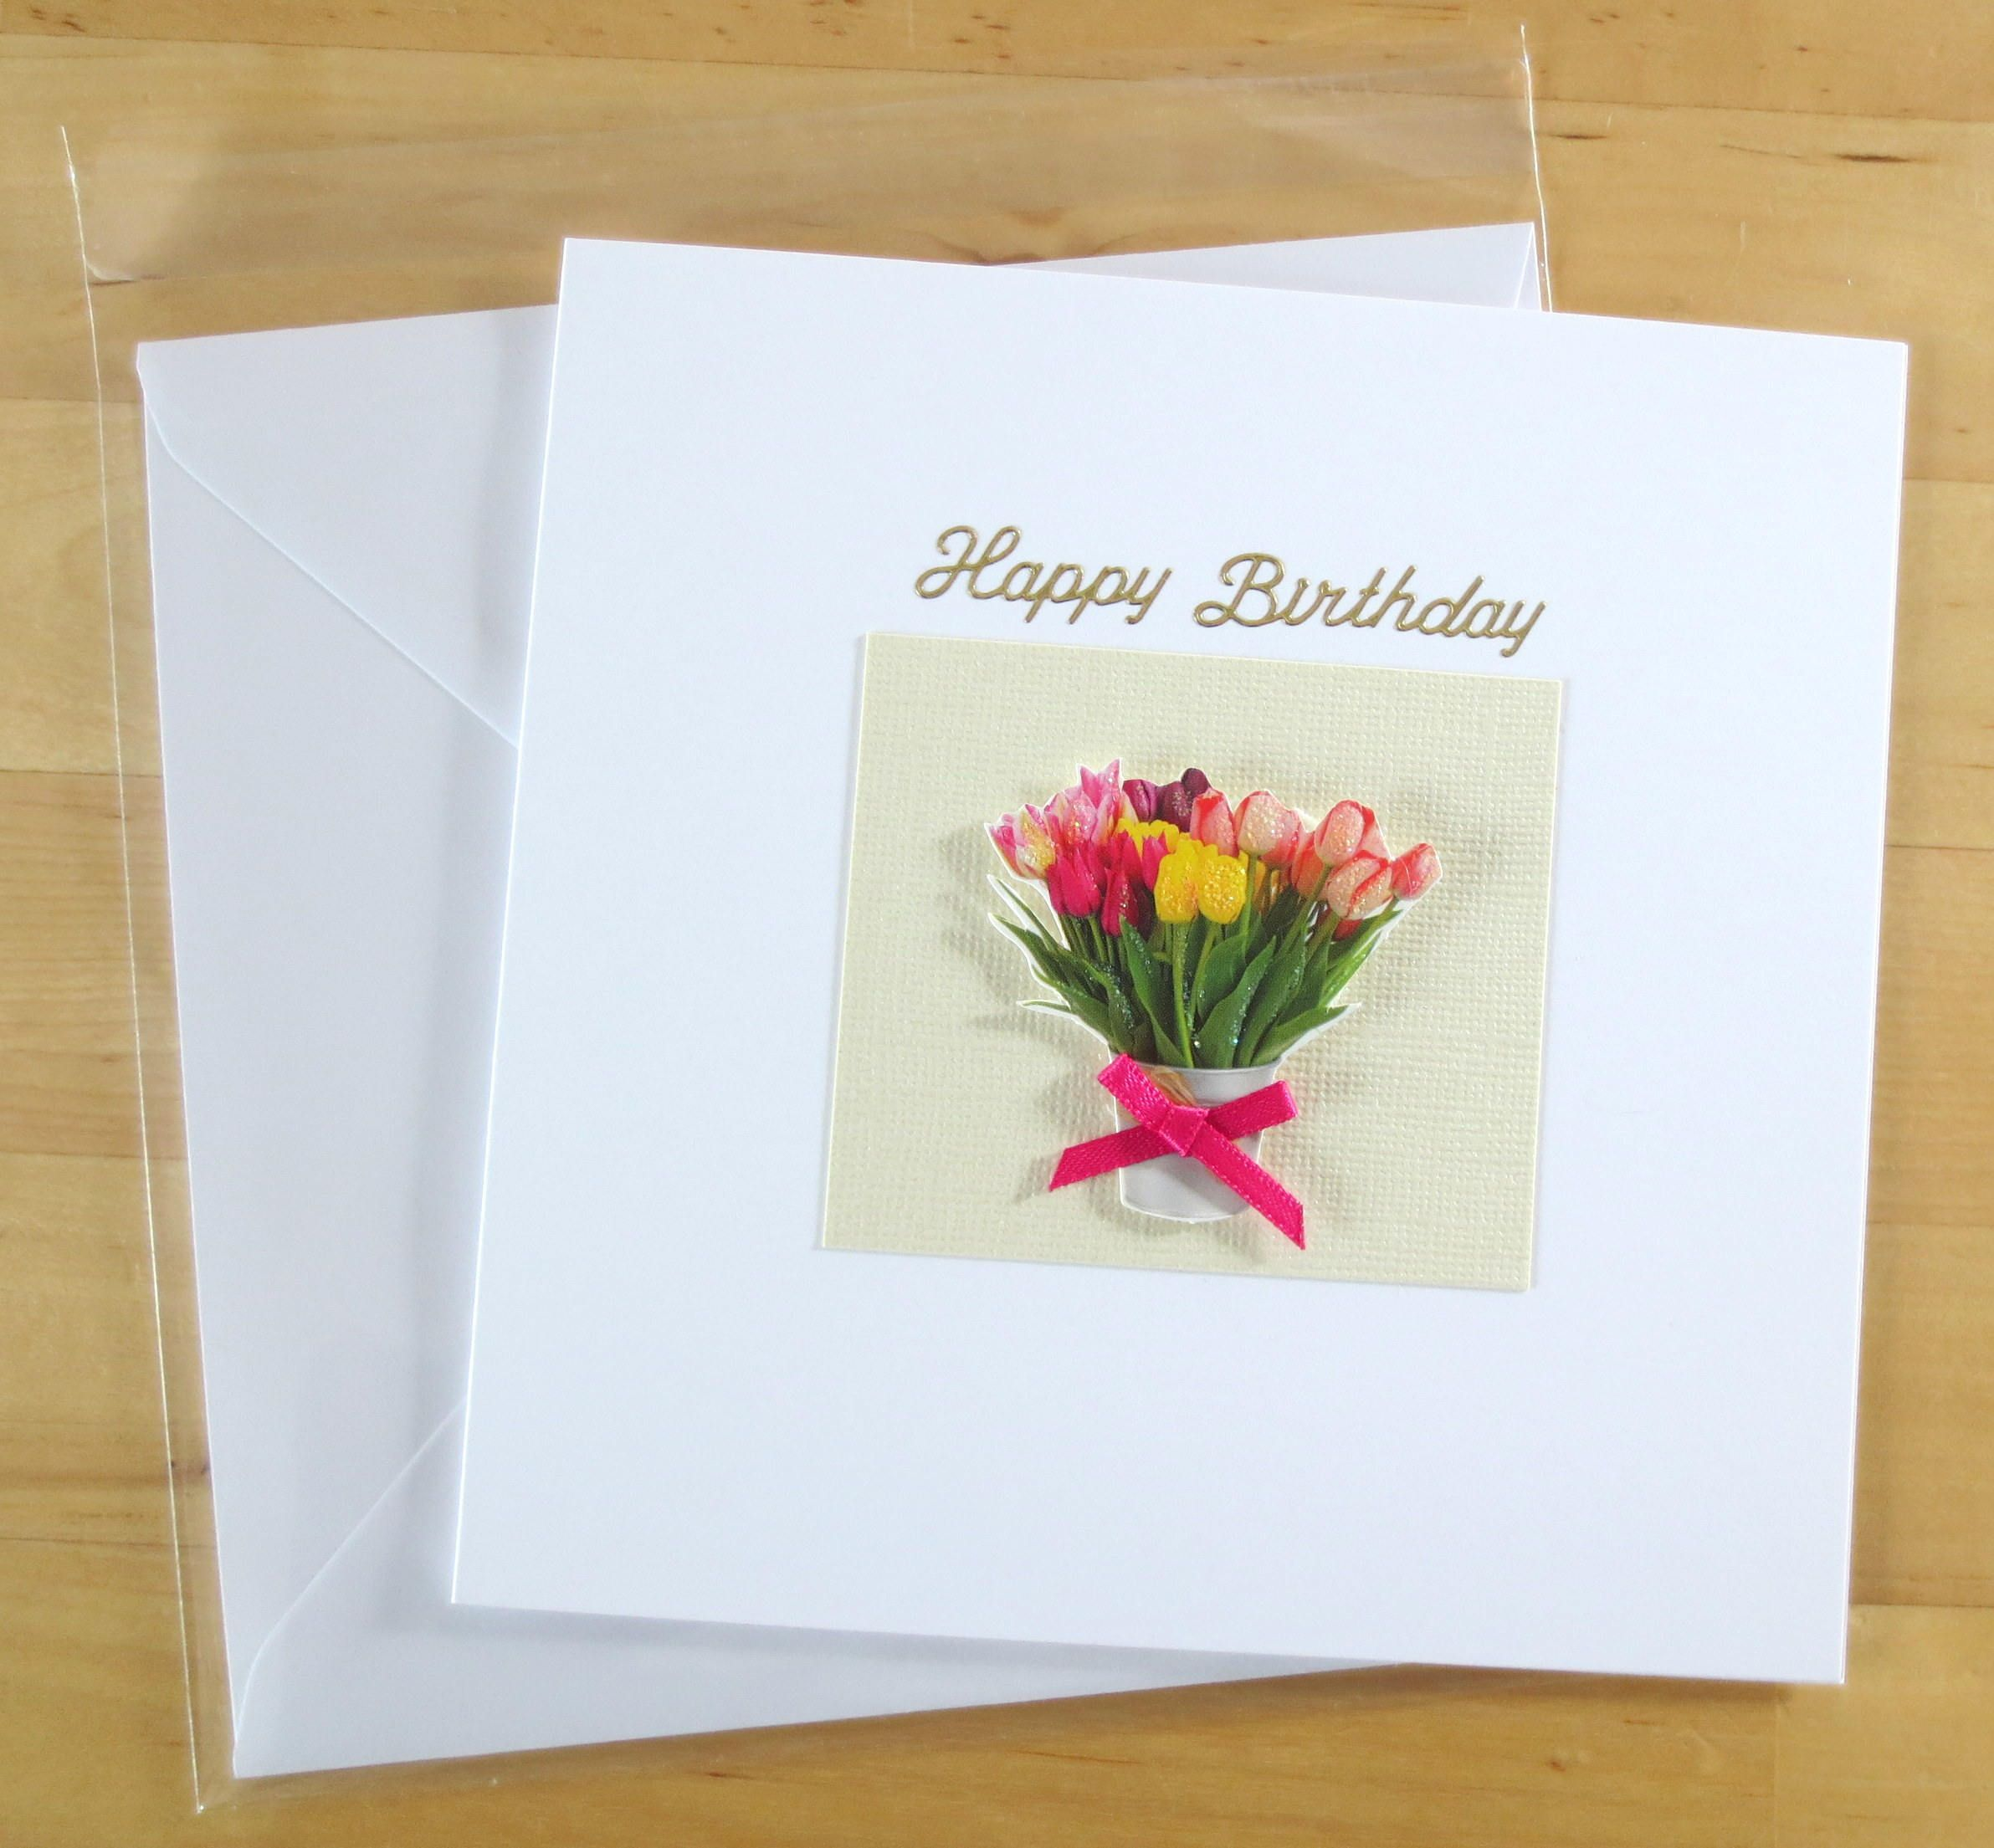 Handmade birthday card flower card thank you card get well card handmade birthday card flower card thank you card get well card with sympathy card flowers card greetings card handmade handmade card izmirmasajfo